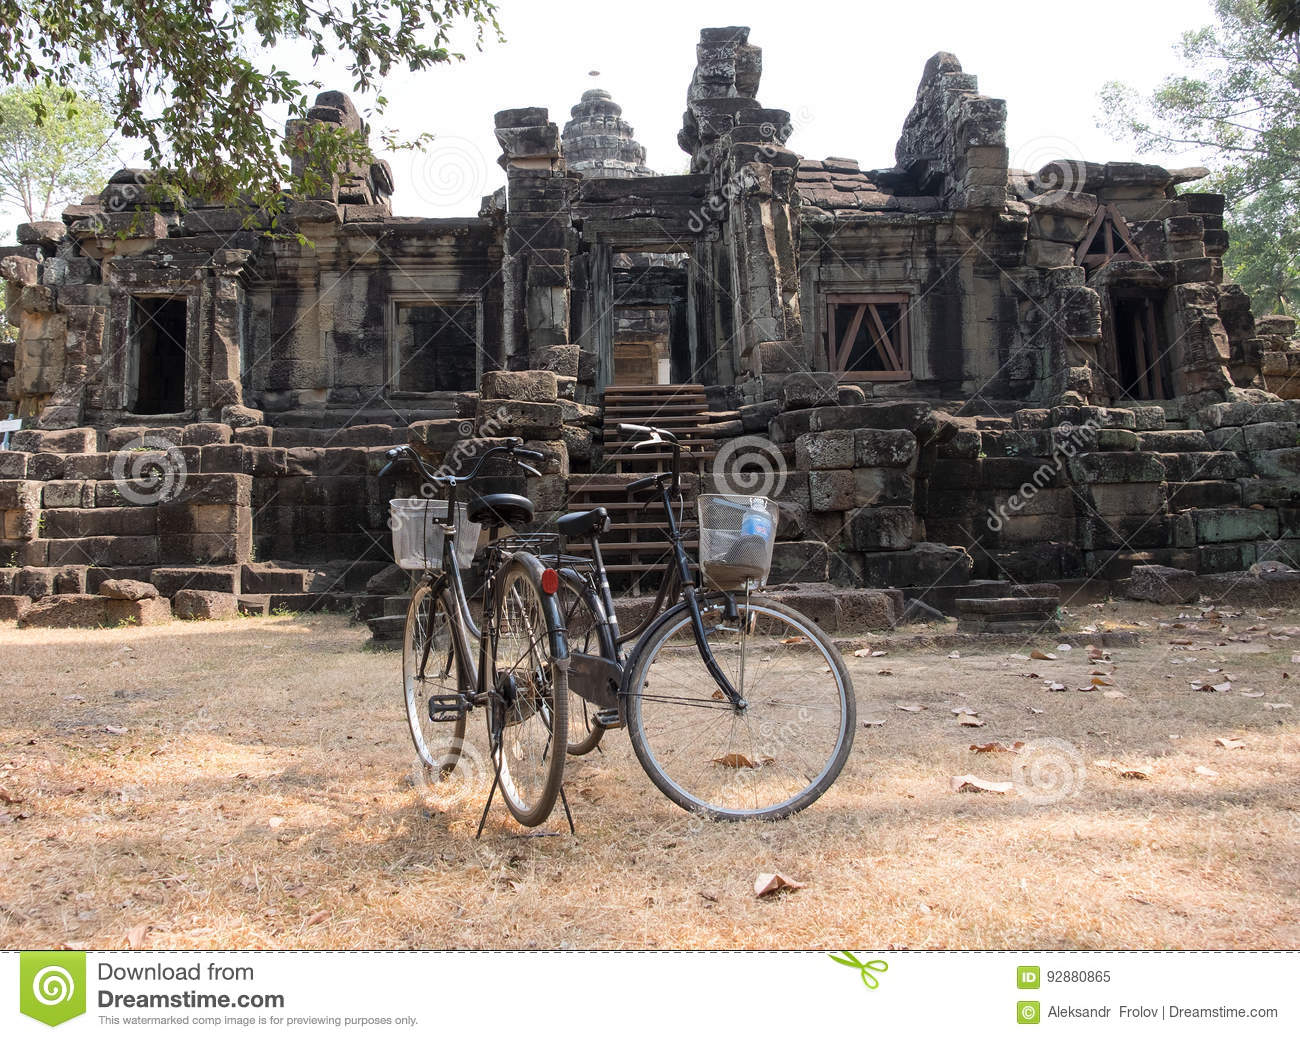 Two bikes on the background of the ruins at Angor Wat